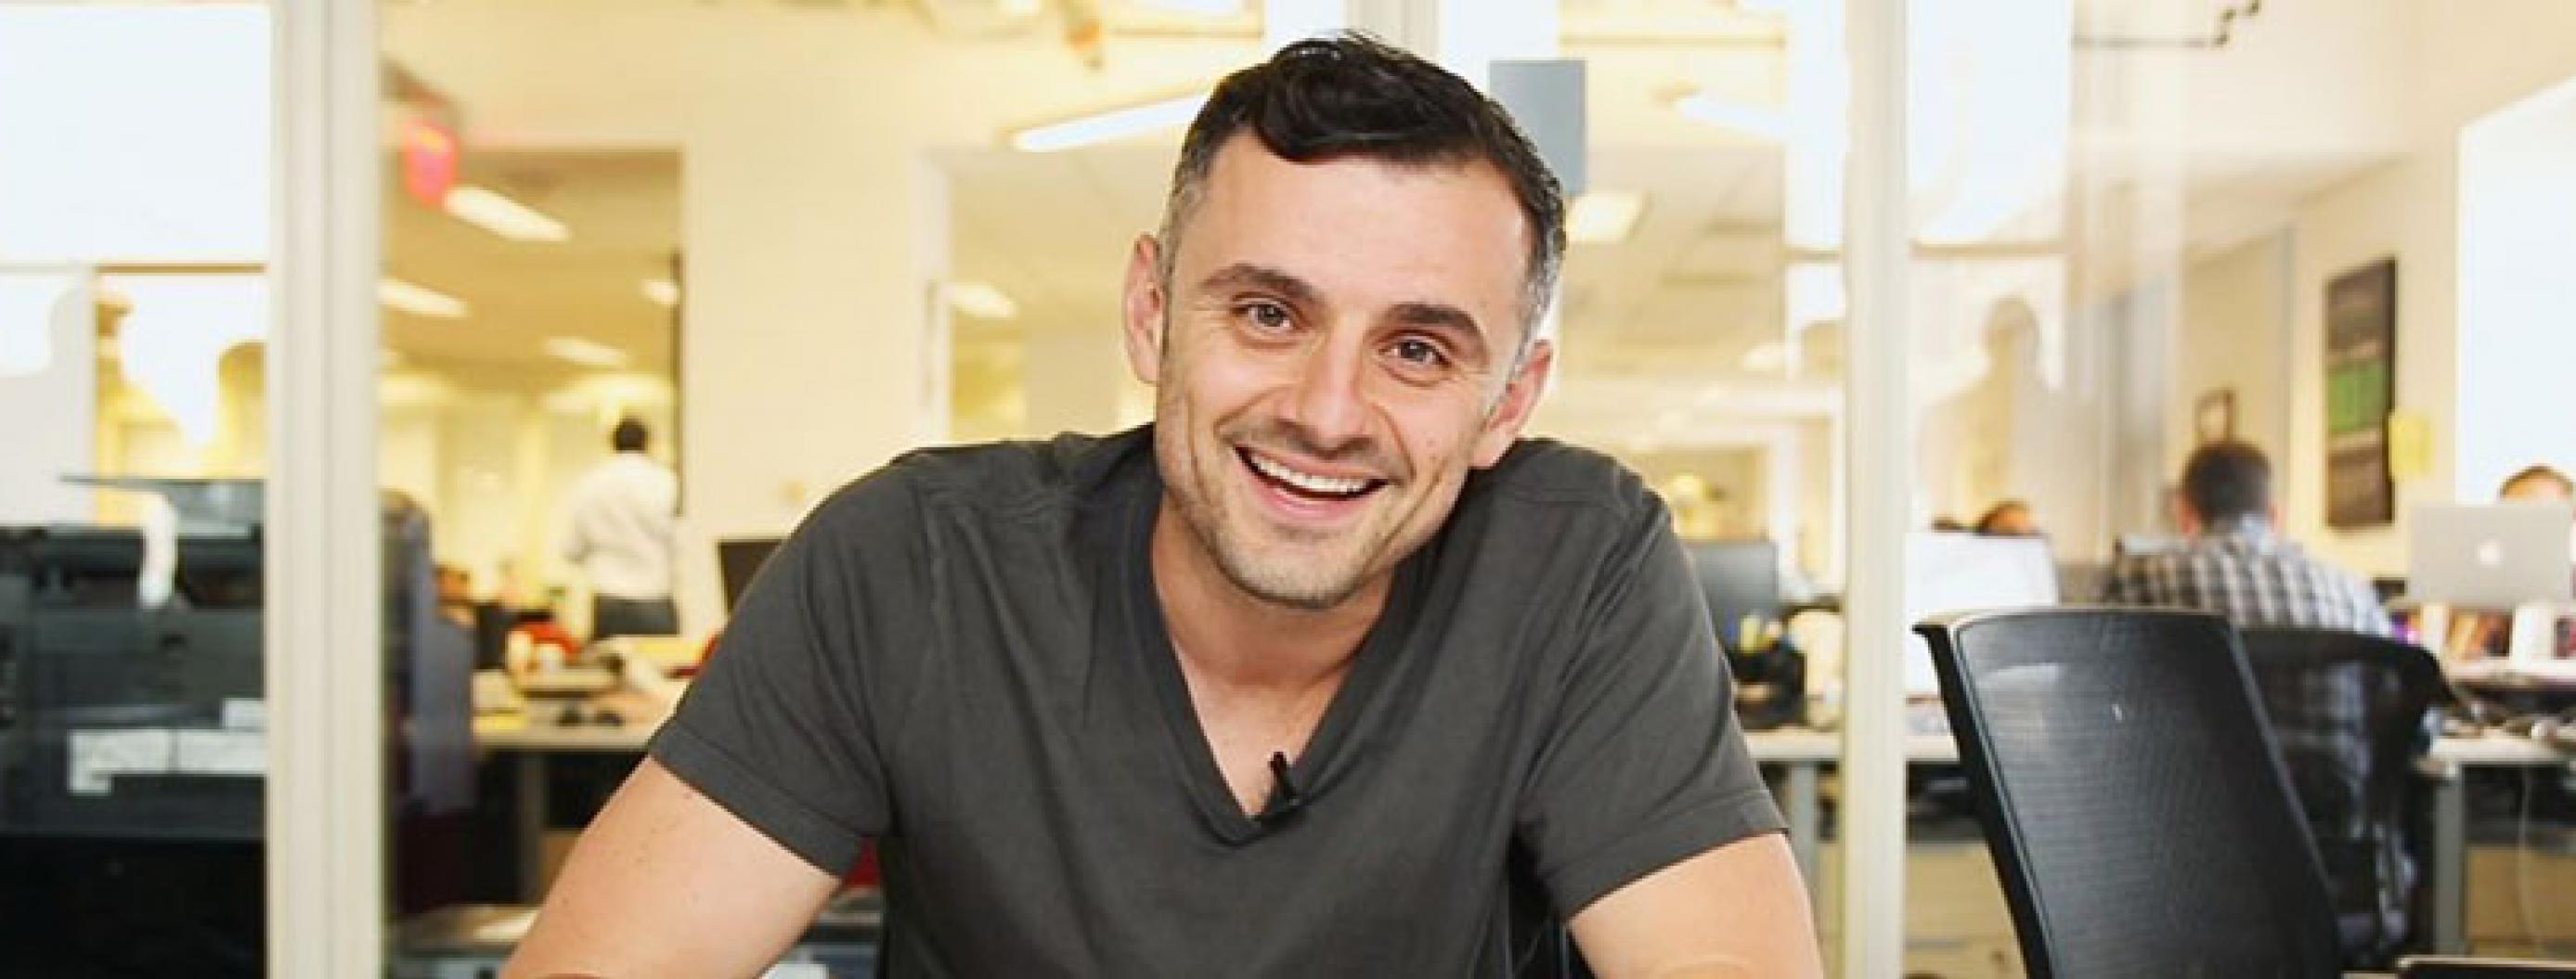 5 Life Changing Tips From Gary Vaynerchuk Every Entrepreneur Needs